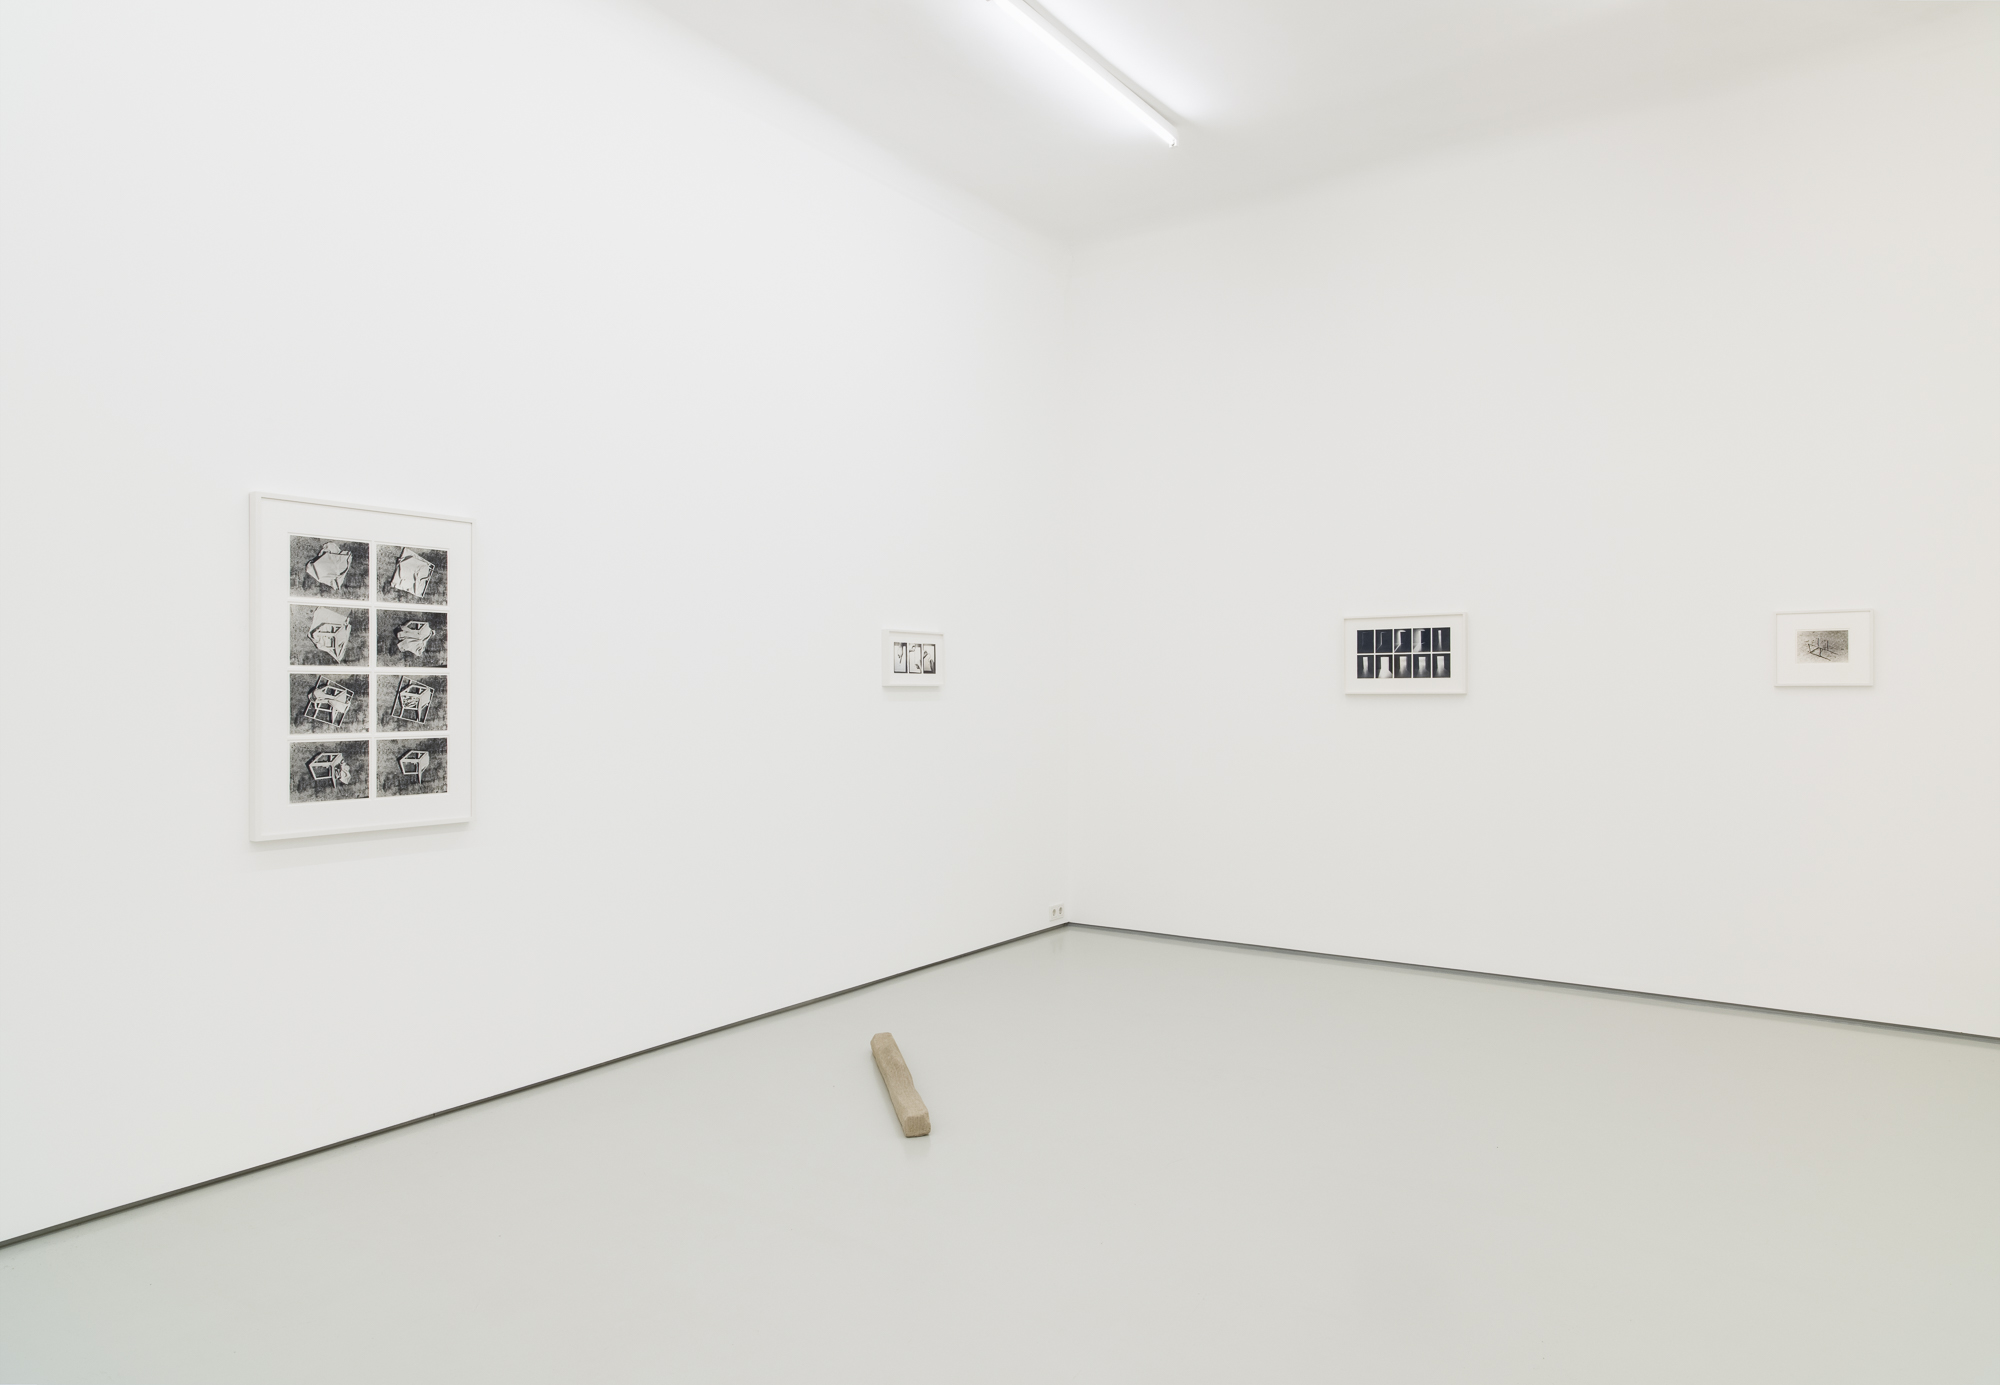 Ferenc Ficzek, Exits Left Behind, exhibition view, Gregor Podnar, Berlin, 2019. Photo: Marcus Schneider.